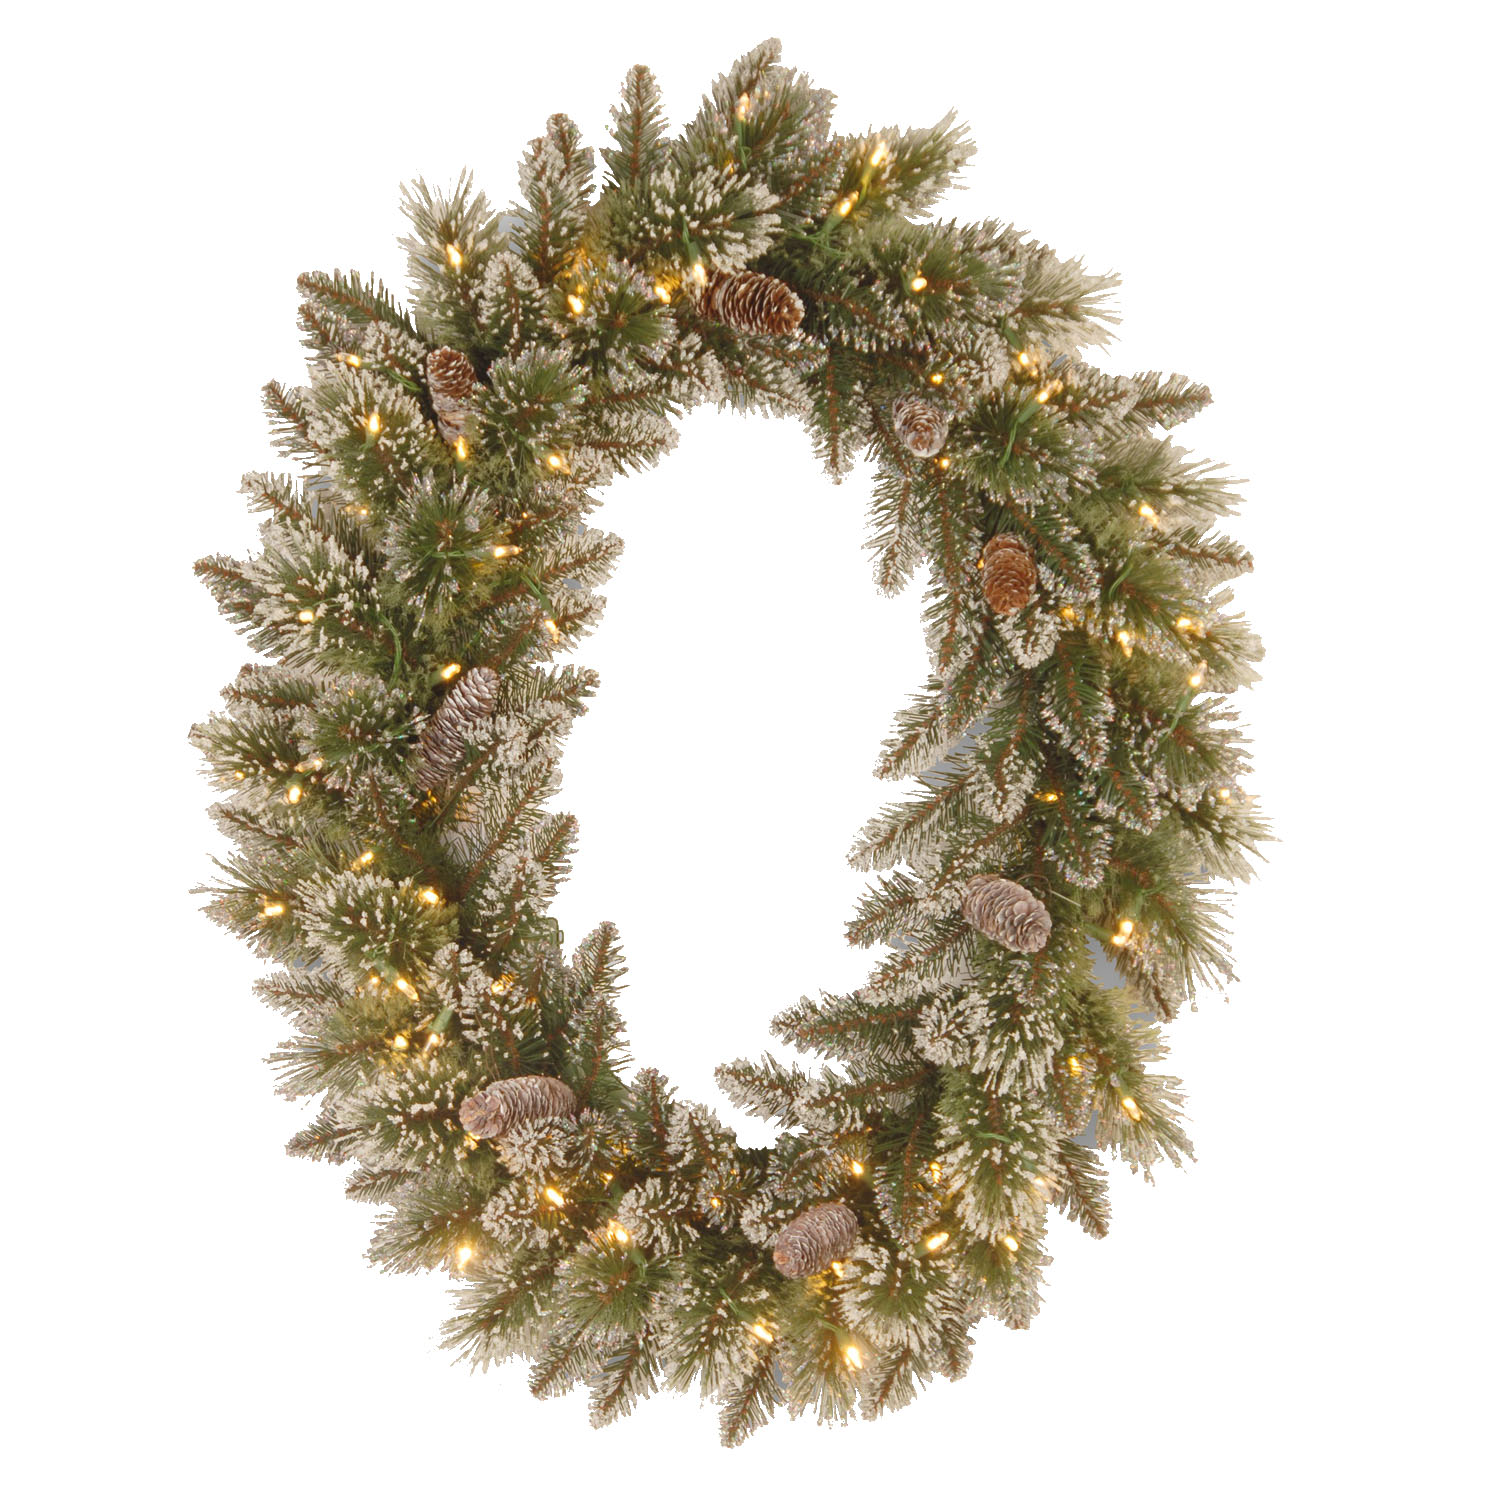 "30"" x 21""Glittery Bristle Pine Oval Wreath with 8 White Tipped Cones and 50 Warm White Battery Operated LED Lights w/Timer"